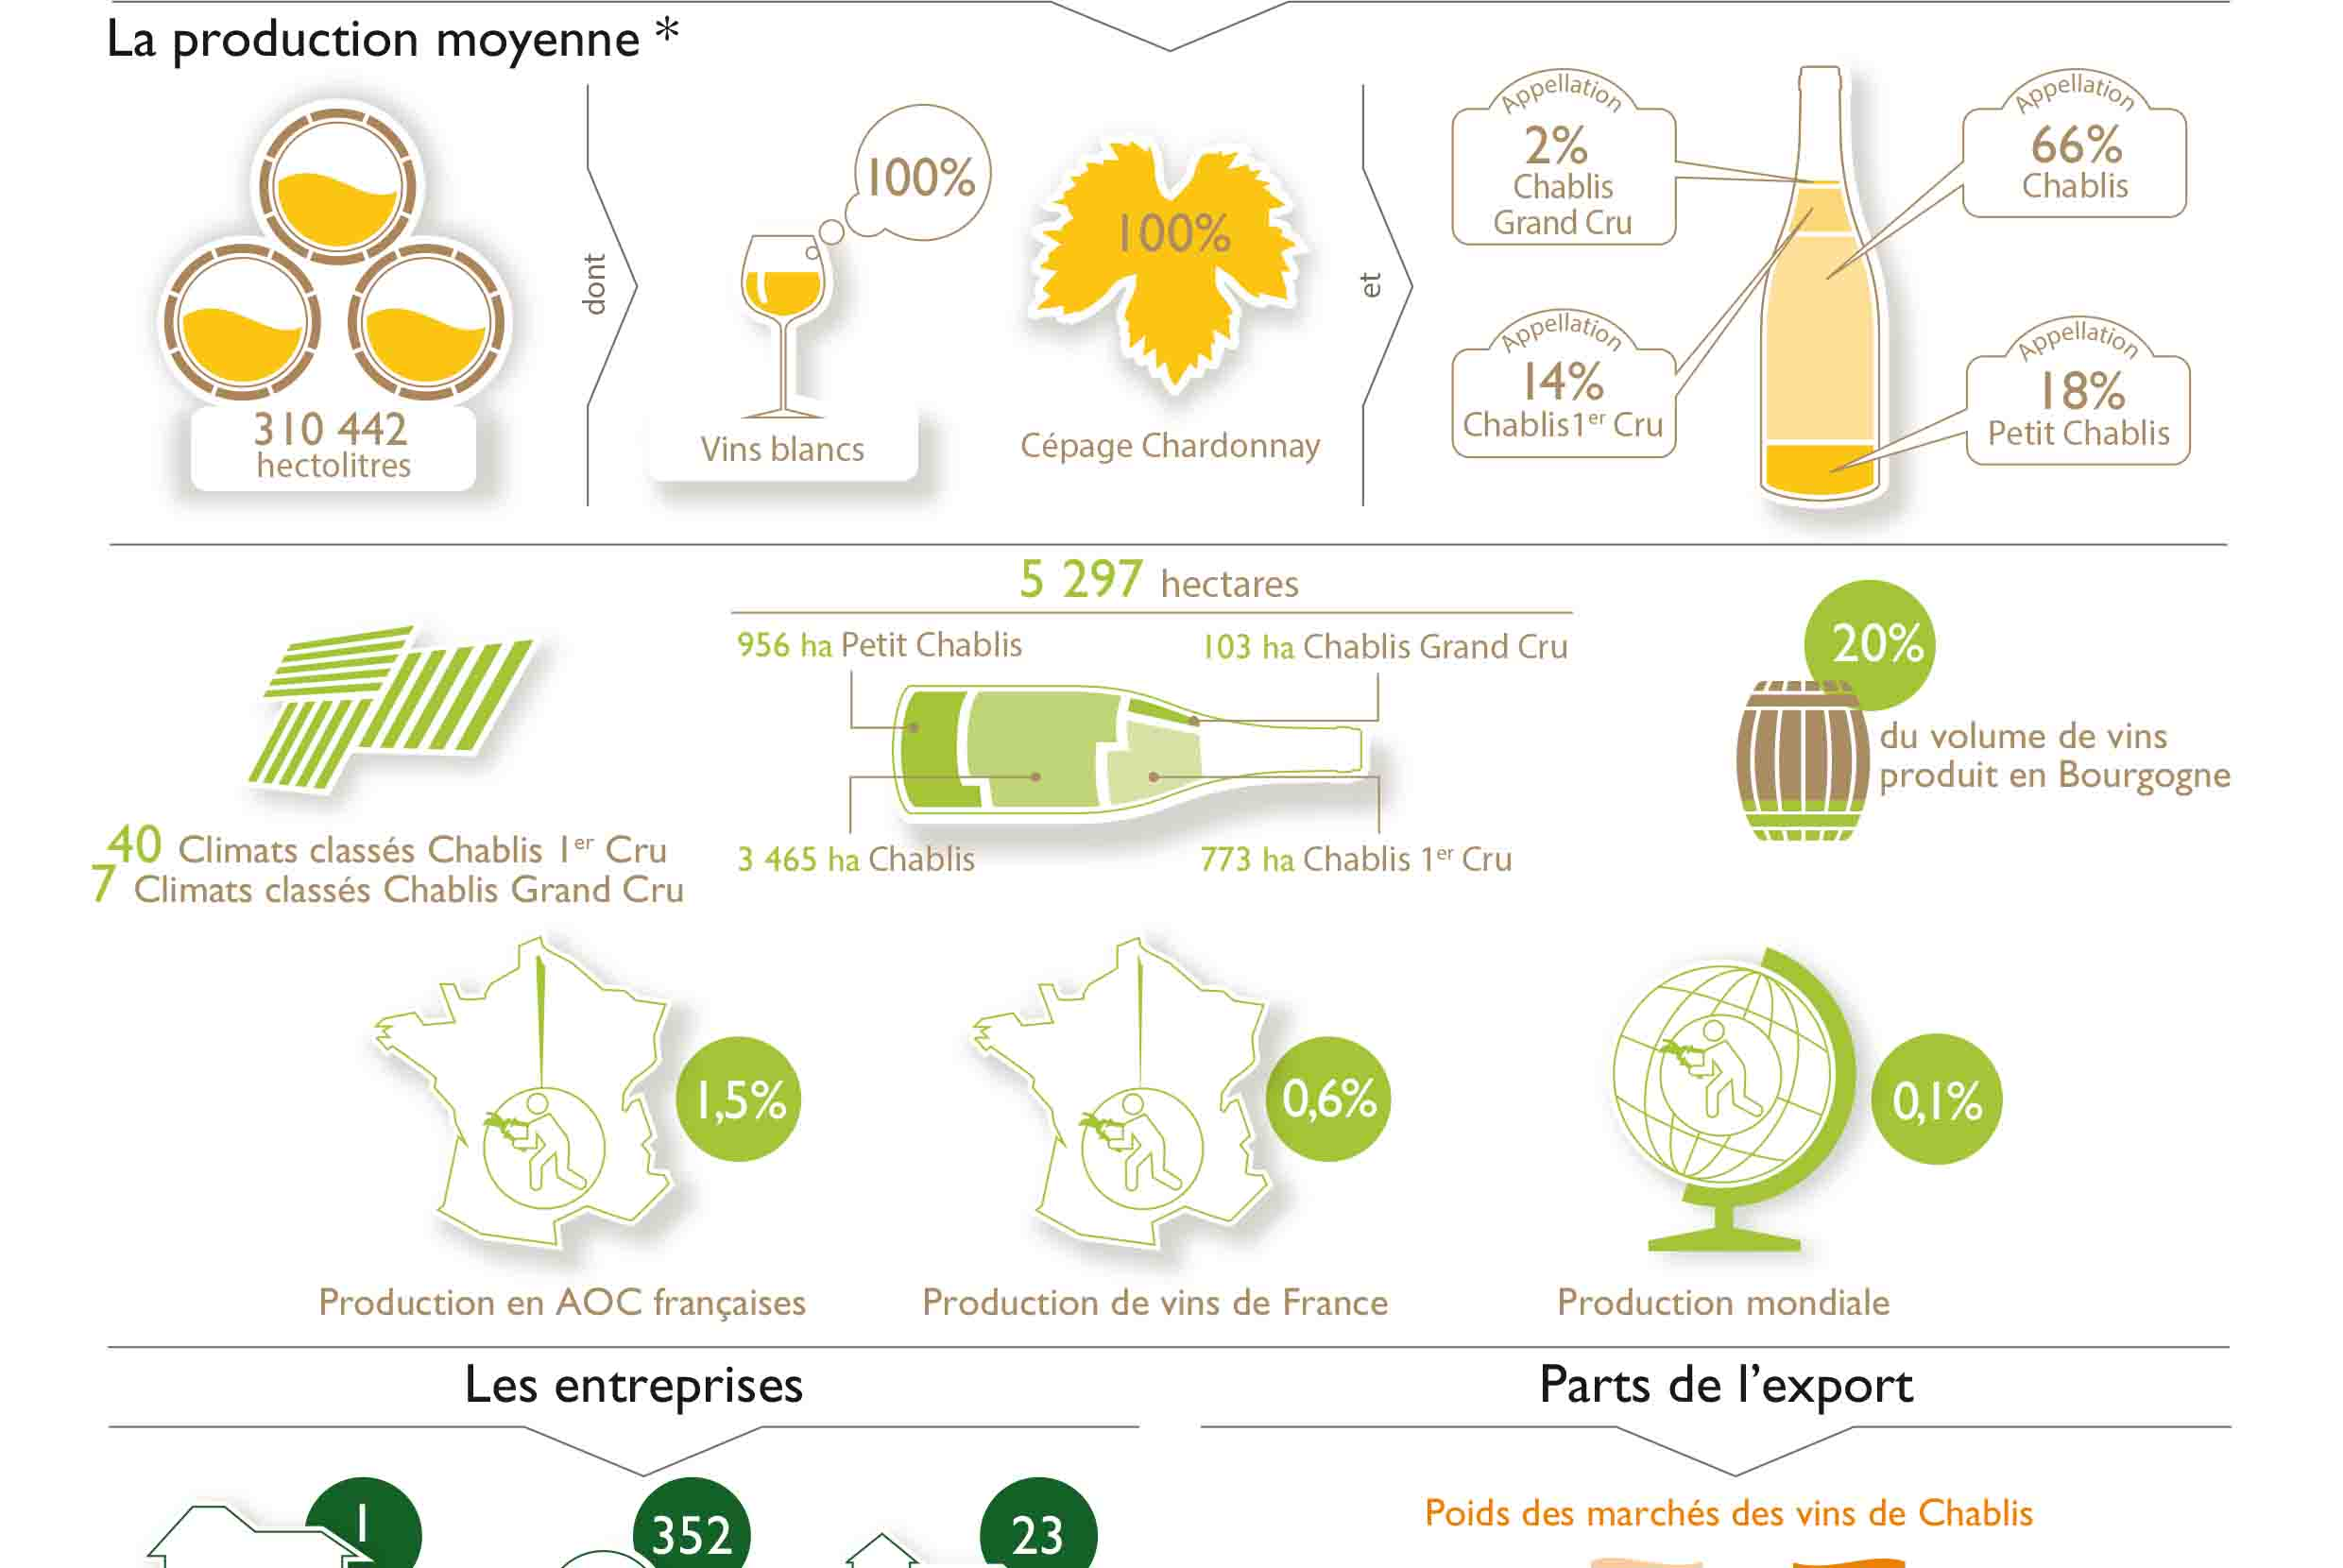 Key figures for the Chablis winegrowing region